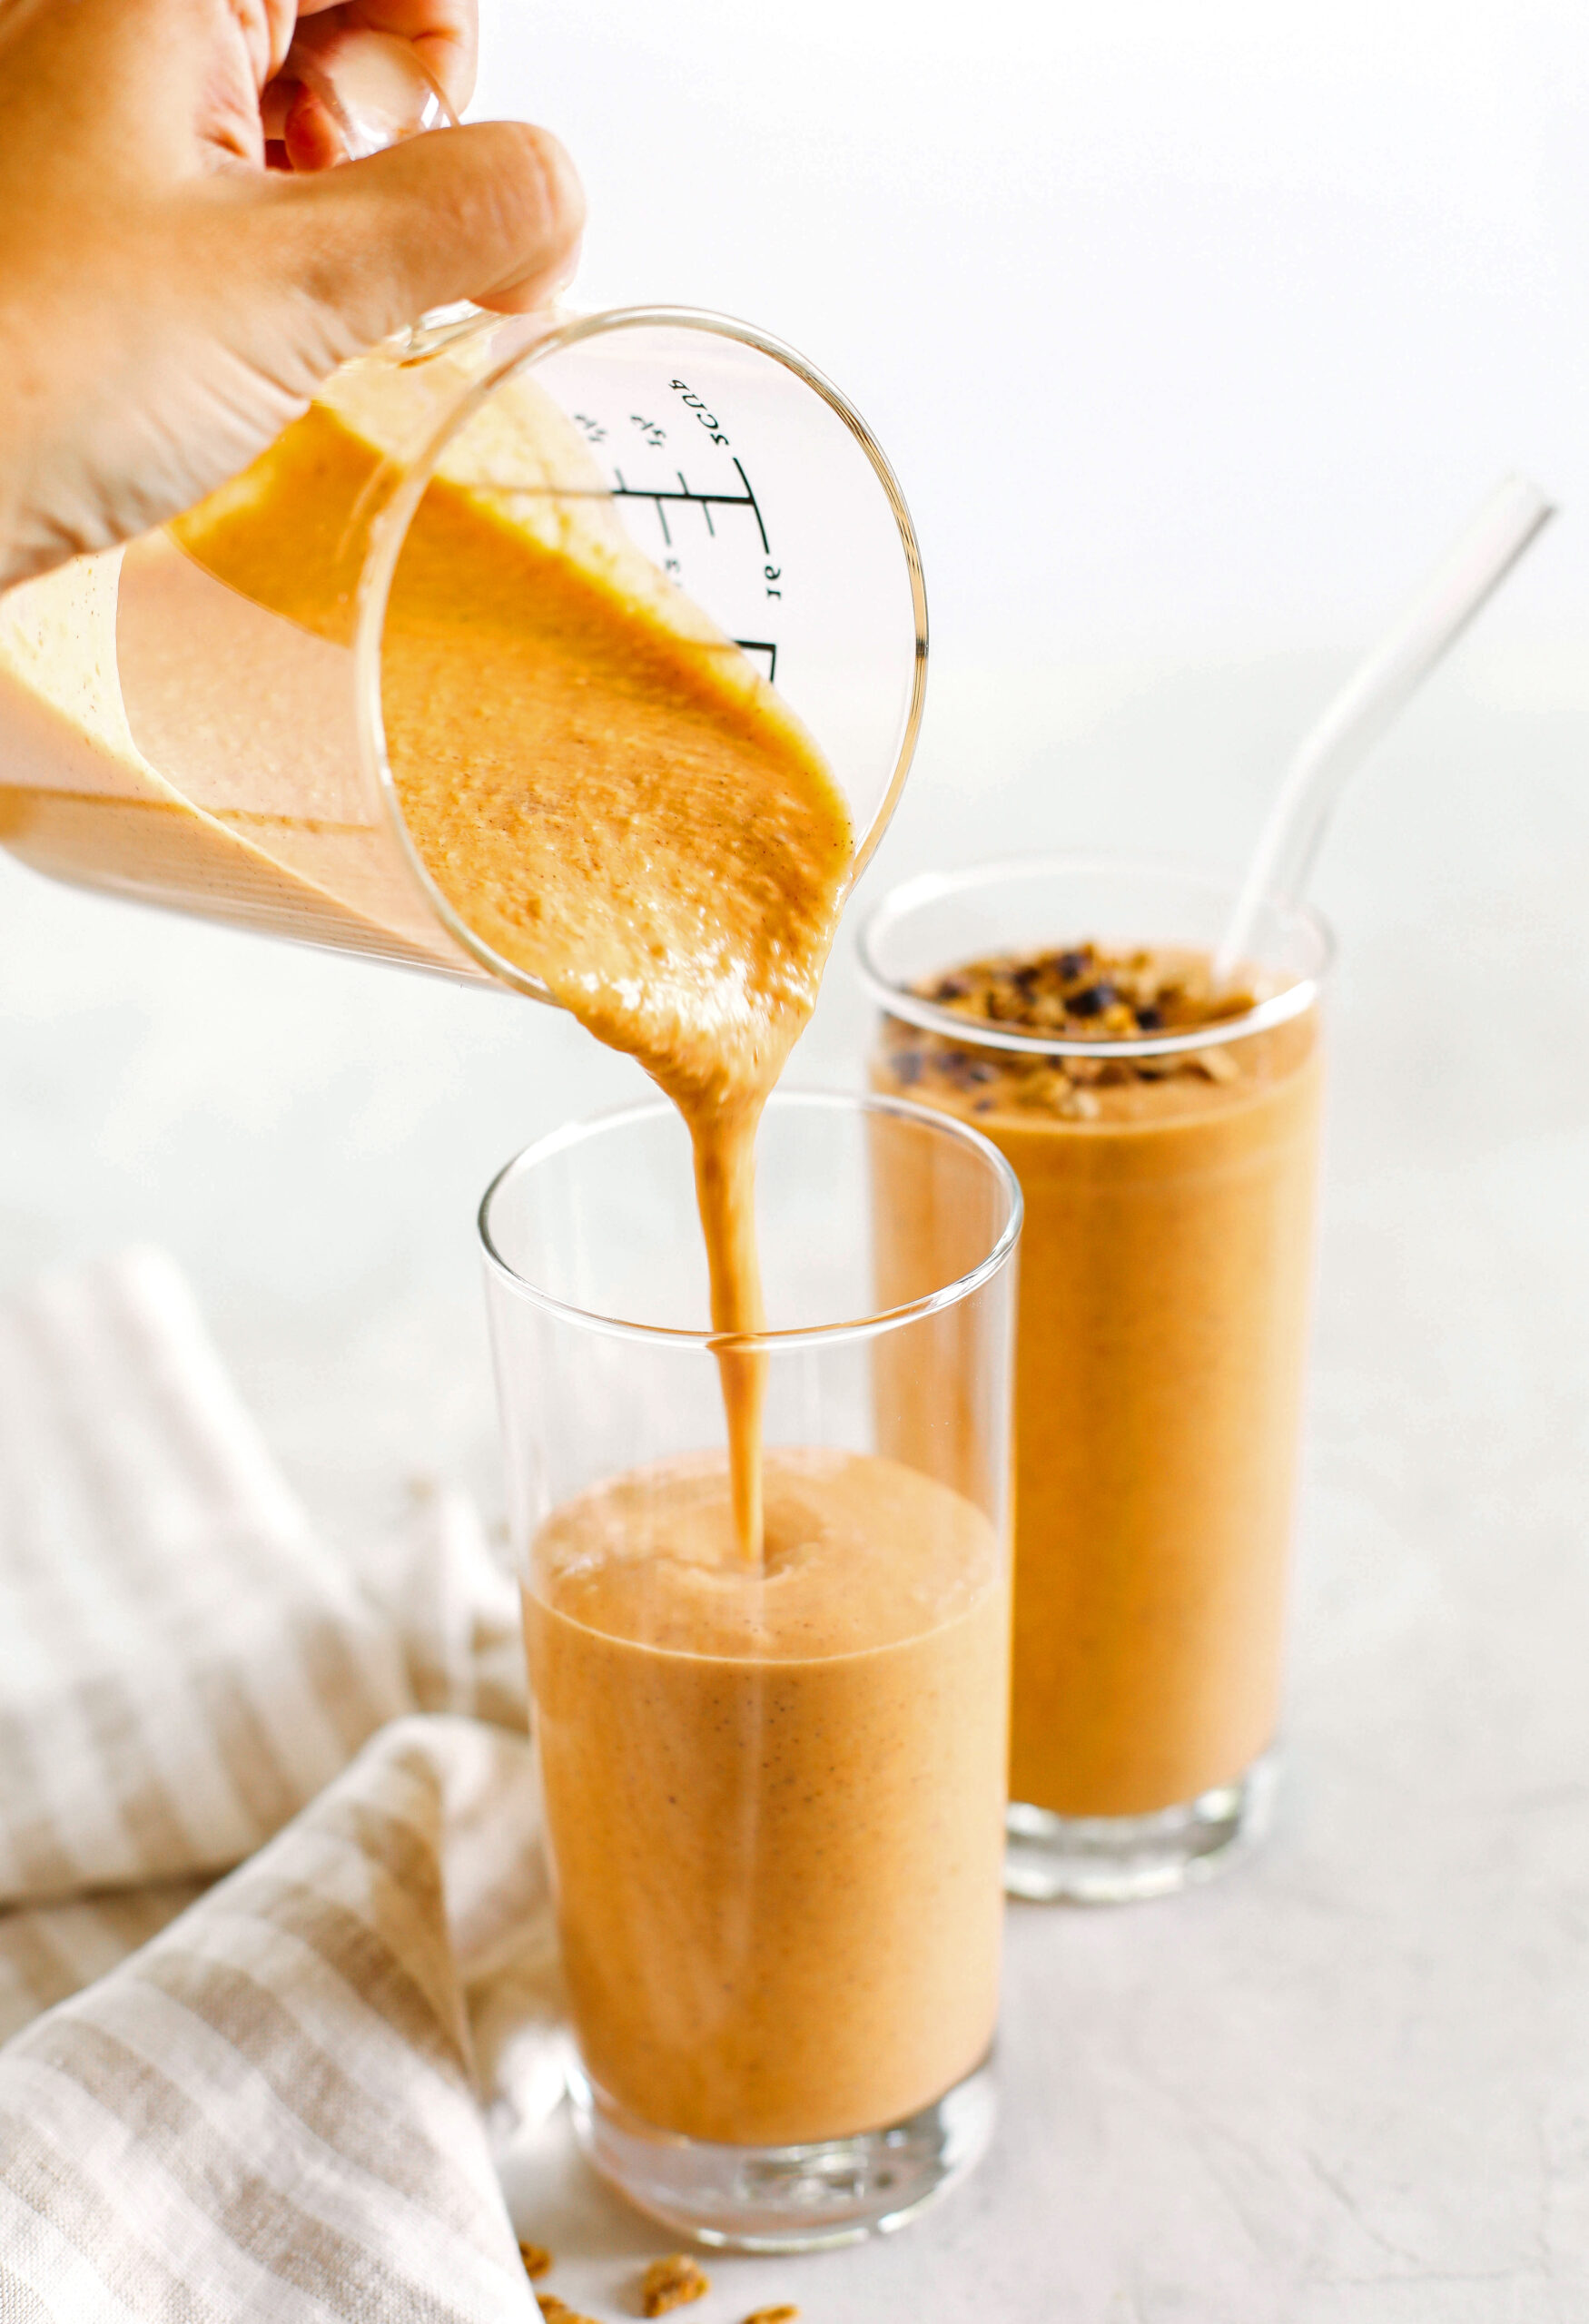 Start your morning off with this thick and creamy Pumpkin Spice Smoothie that is healthy, delicious and loaded with all your fall favorites like pumpkin, apple, banana, Greek yogurt, maple syrup and warm spices!